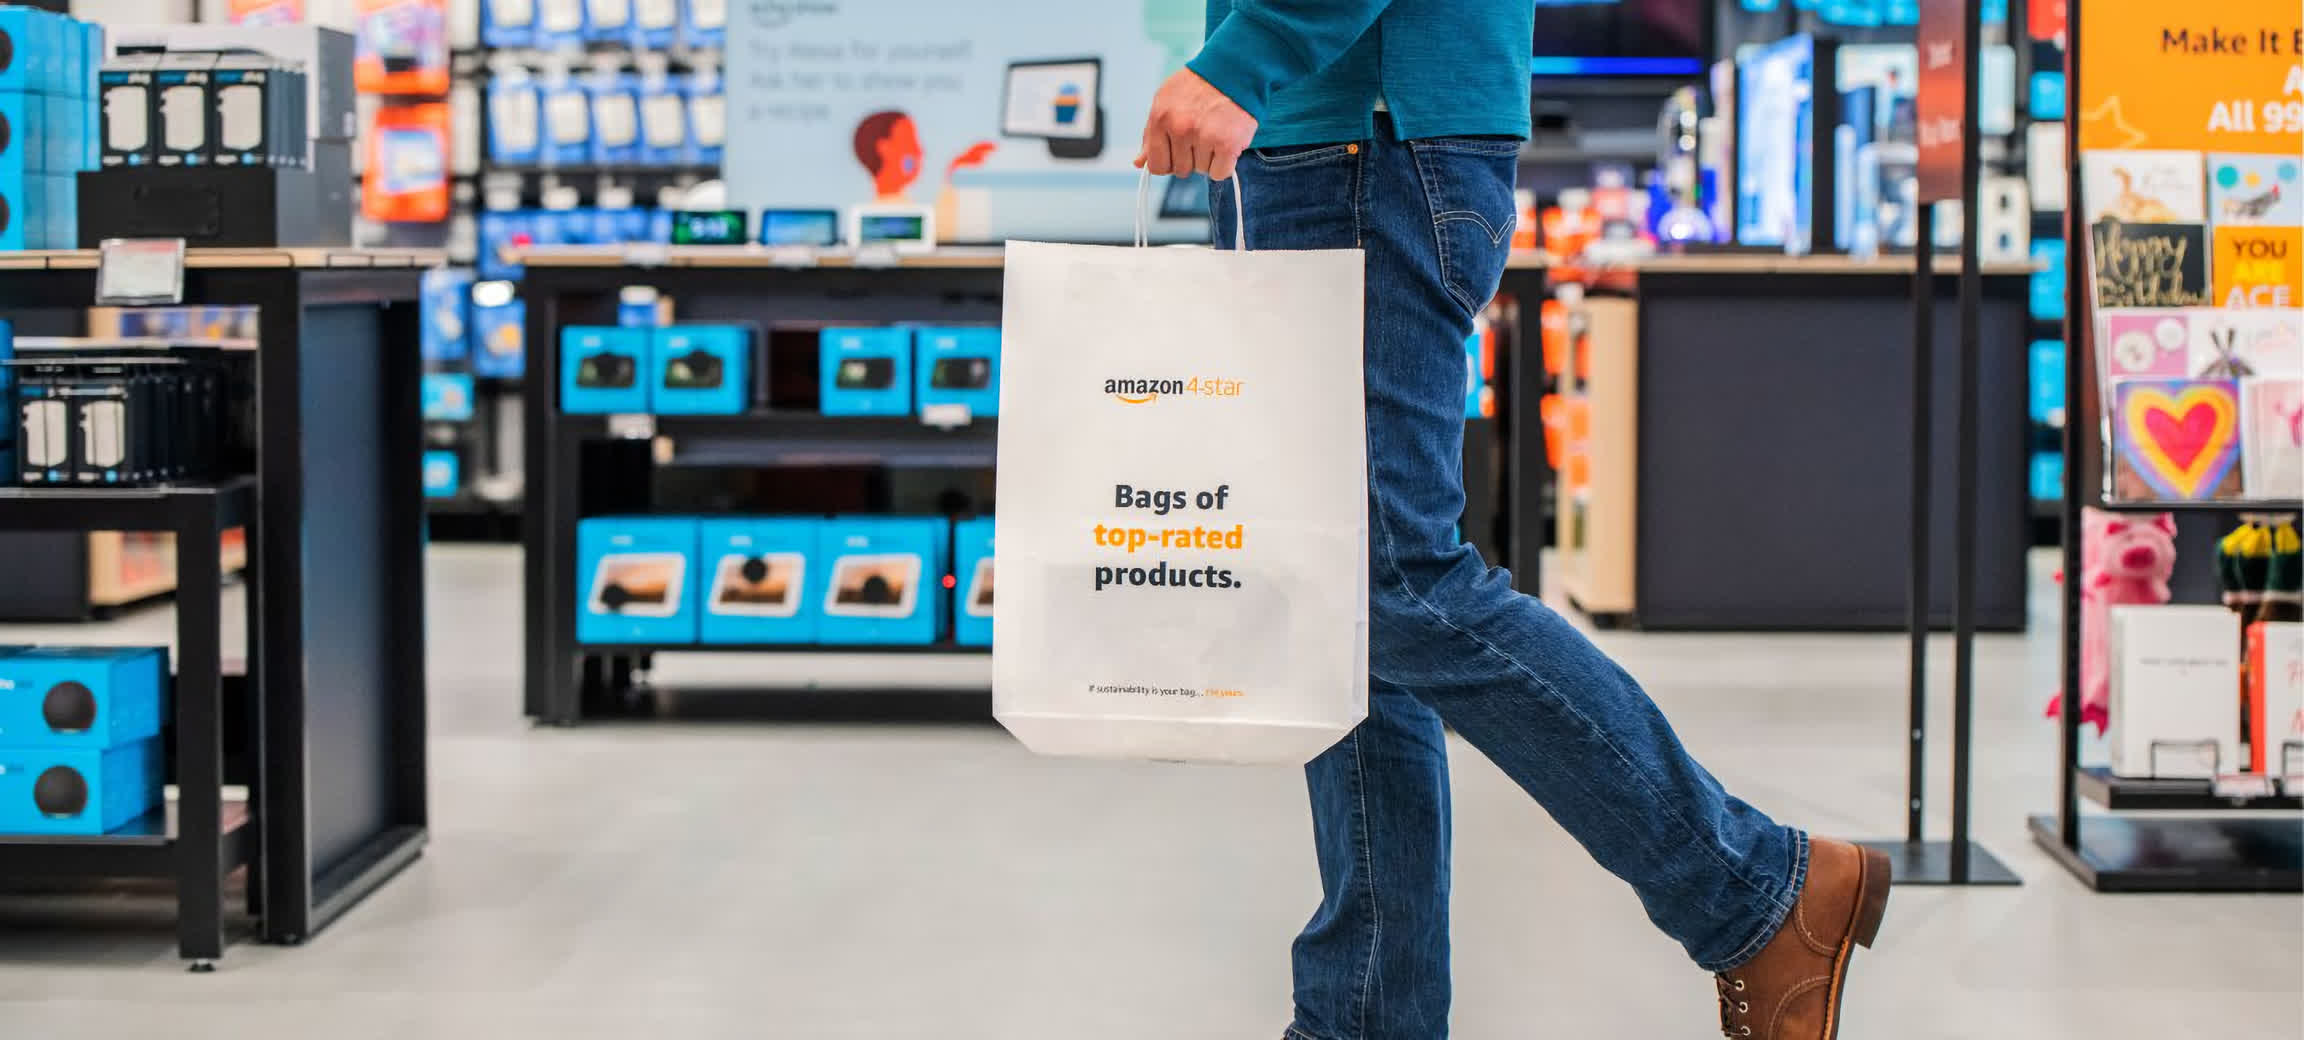 Amazon's first 4-star international store opens in the UK